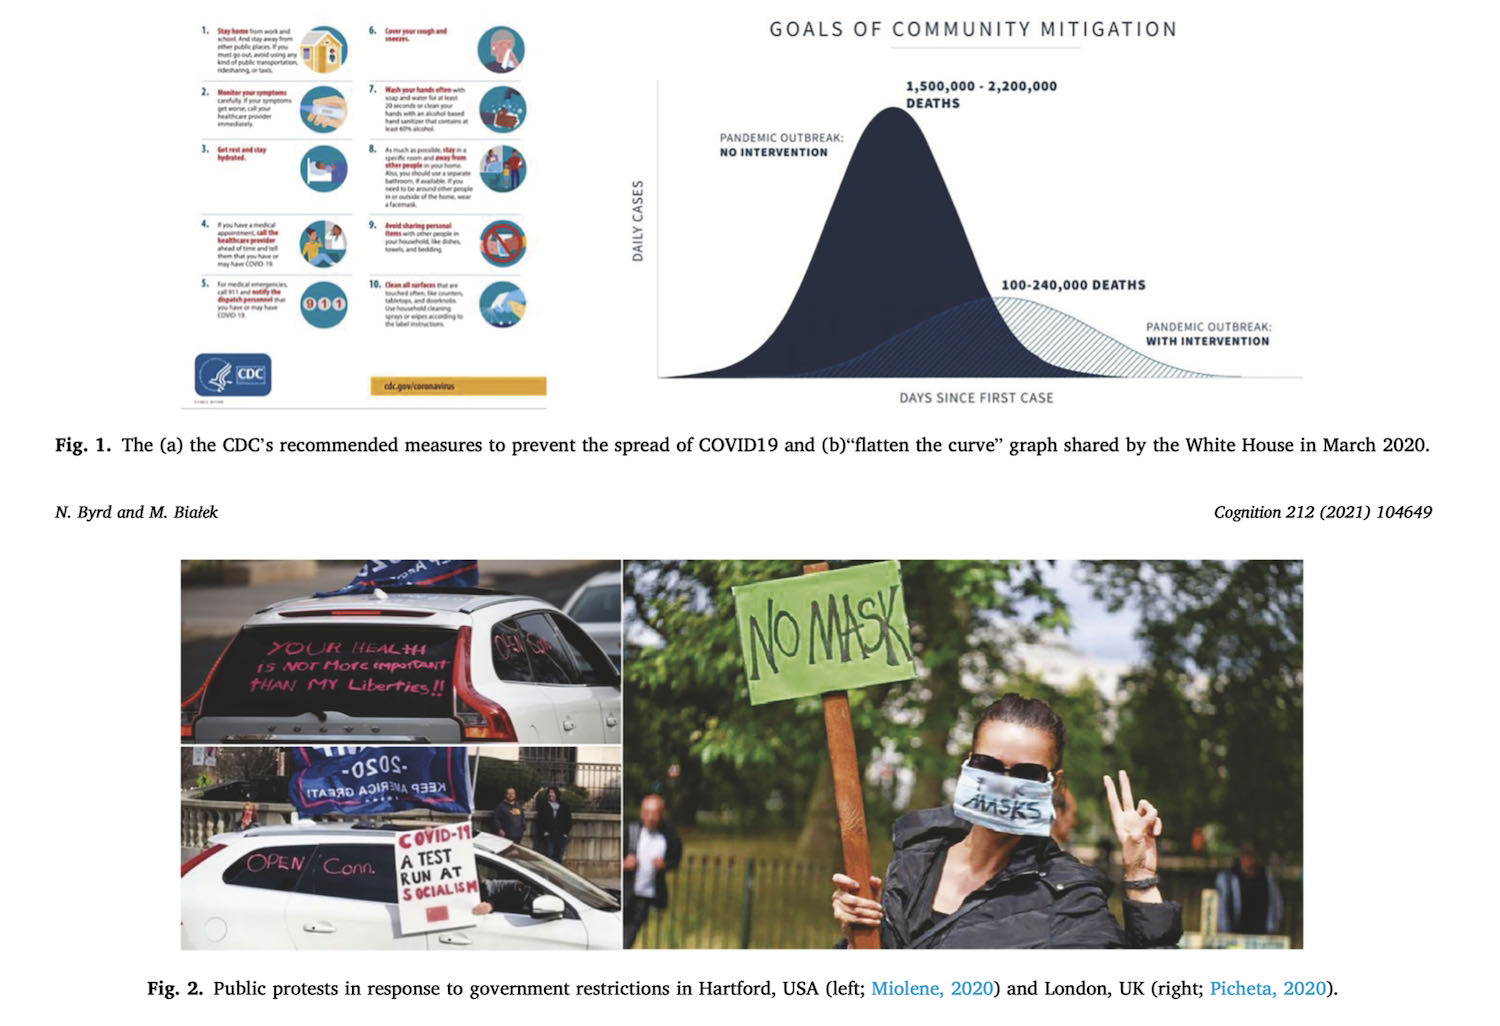 Images of public health recommendation and protest signs from the COVID-19 pandemic of 2020.